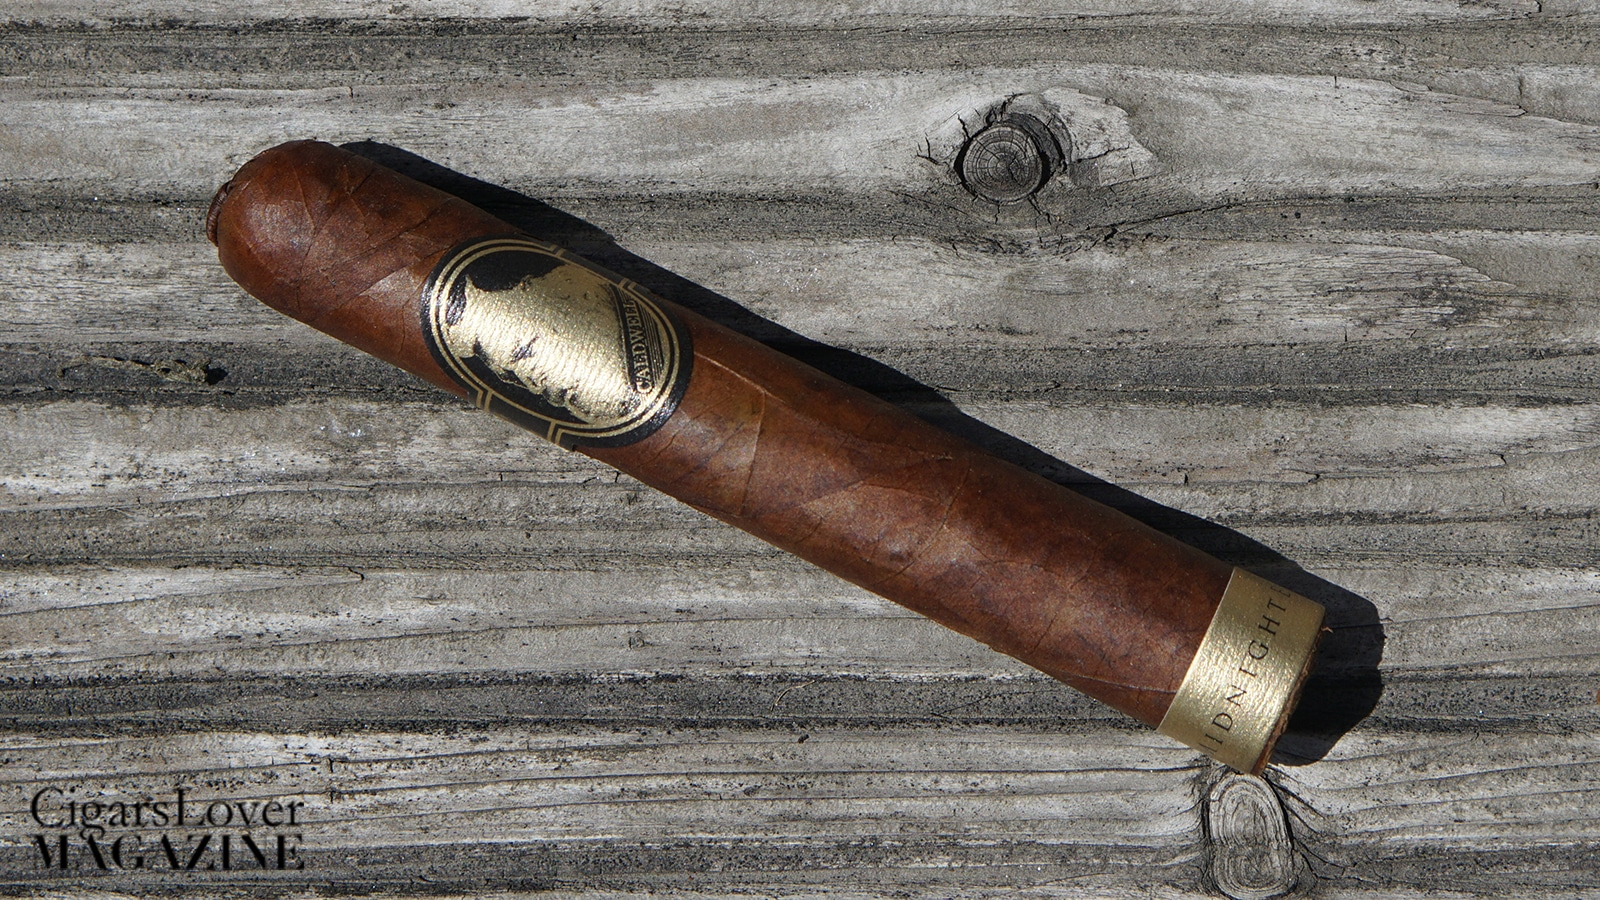 Caldwell Eastern Standard Mignight Express Robusto